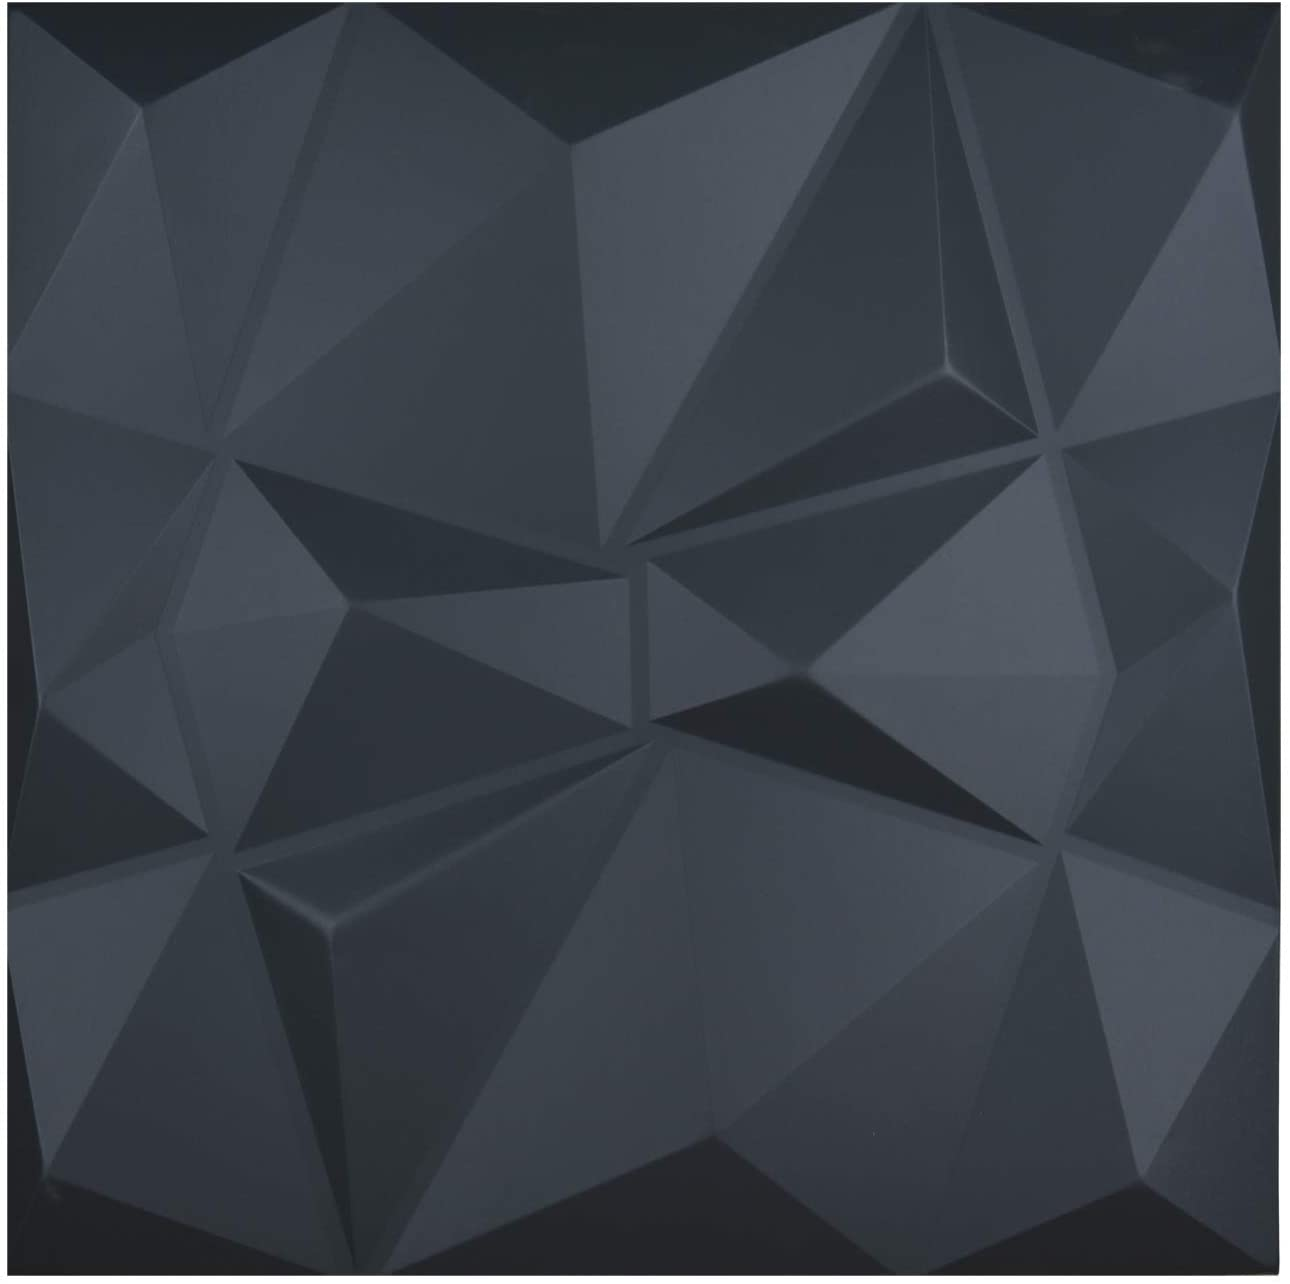 A12634 - Leather 3D Textured Wall Covering PU Material Panels Wave Wall 23.6x23.6 In (1 Piece)